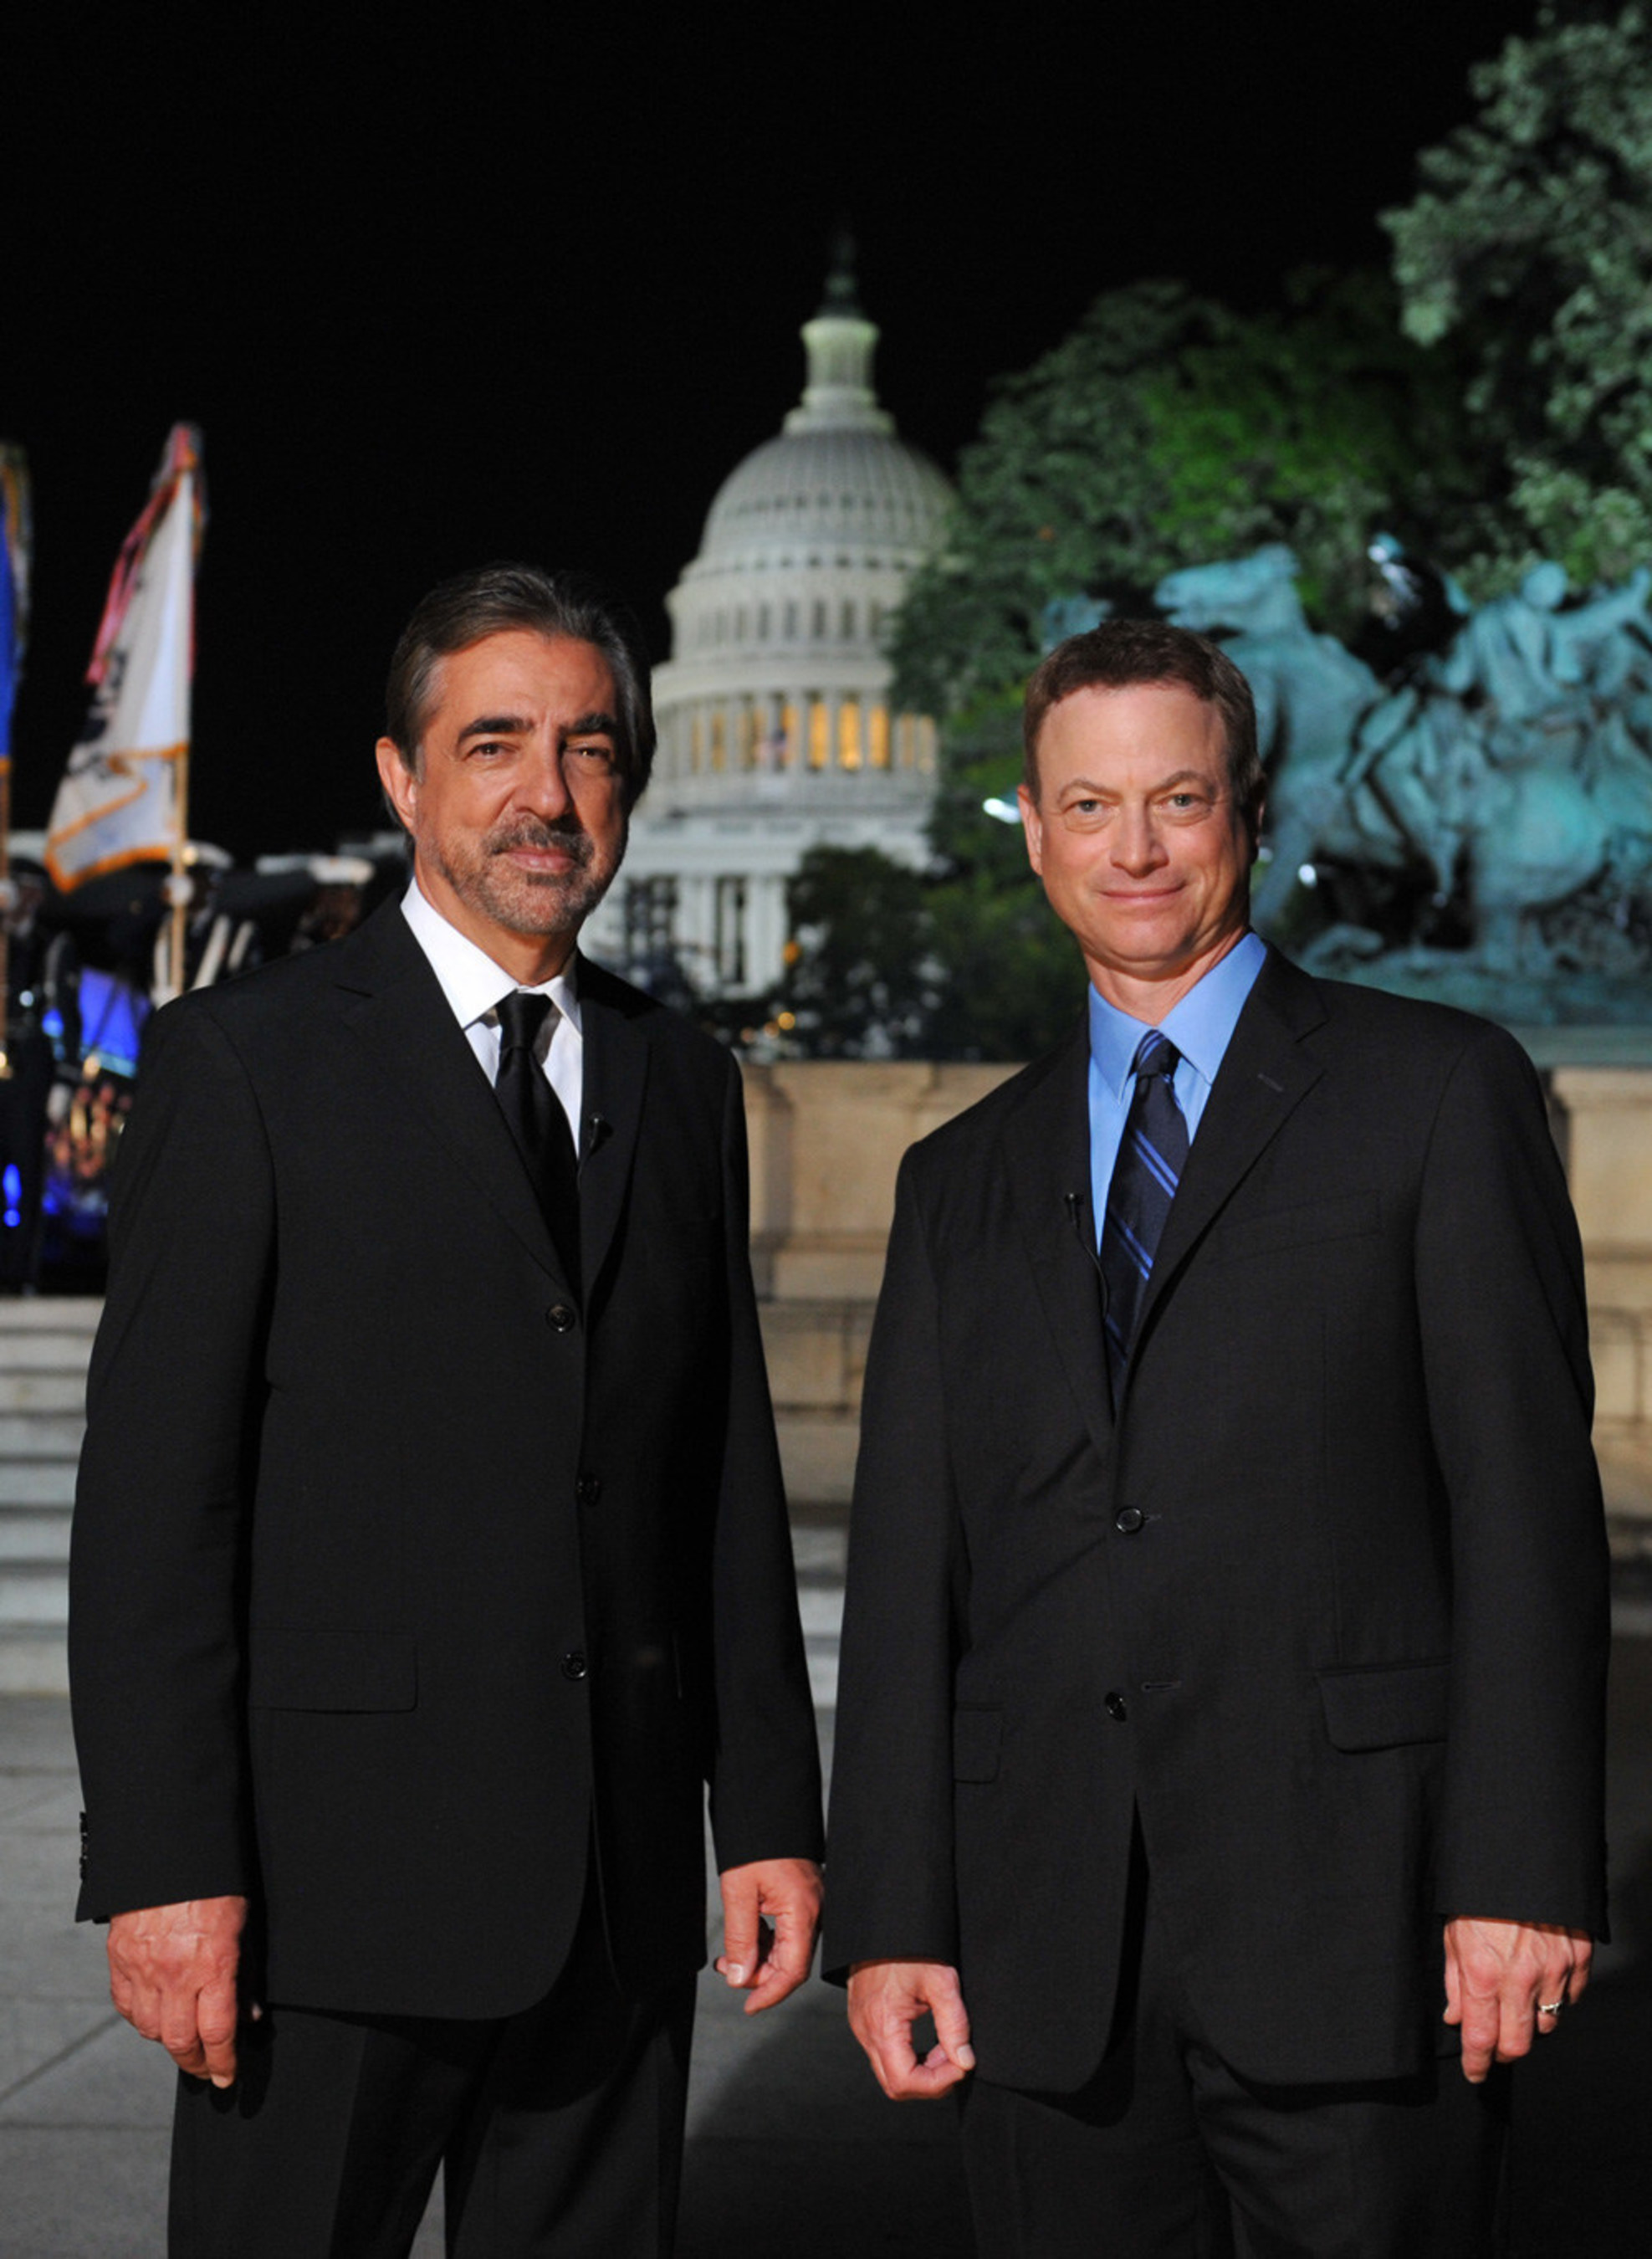 Tony Award-winner Joe Mantegna and Emmy Award-winner Gary Sinise co-host theNATIONAL MEMORIAL DAY CONCERT returning live from the West Lawn of the U.S.Capitol on Sunday, May 24, 2015 from 8:00 to 9:30 p.m. ET.  The broadcastmarks the tenth anniversary that the acclaimed actors, who dedicatedthemselves to veterans' causes and supporting our troops in active service,co-host the event.